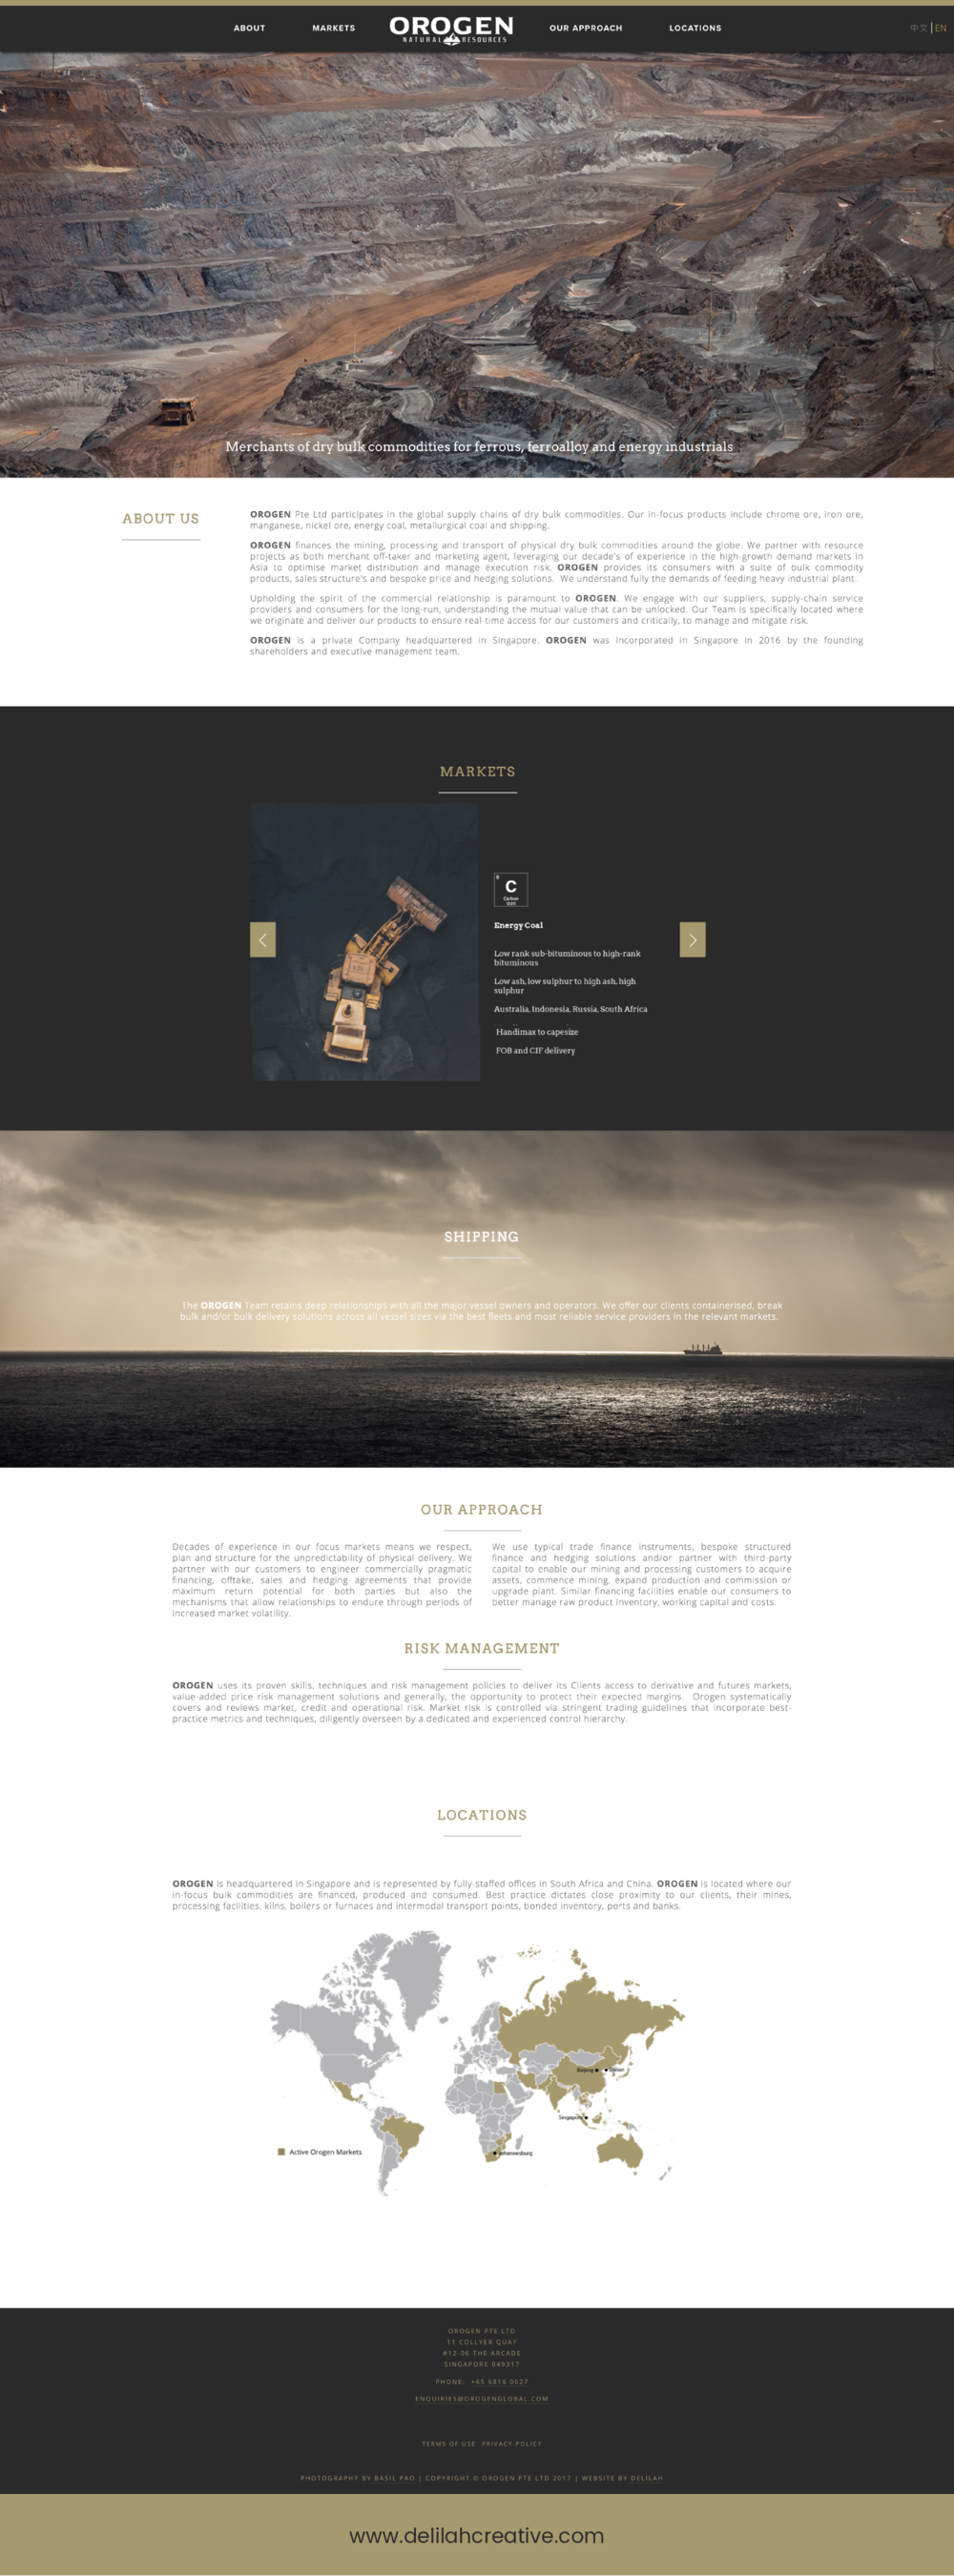 Squarespace Website Design Mining Company by Delilah Creative